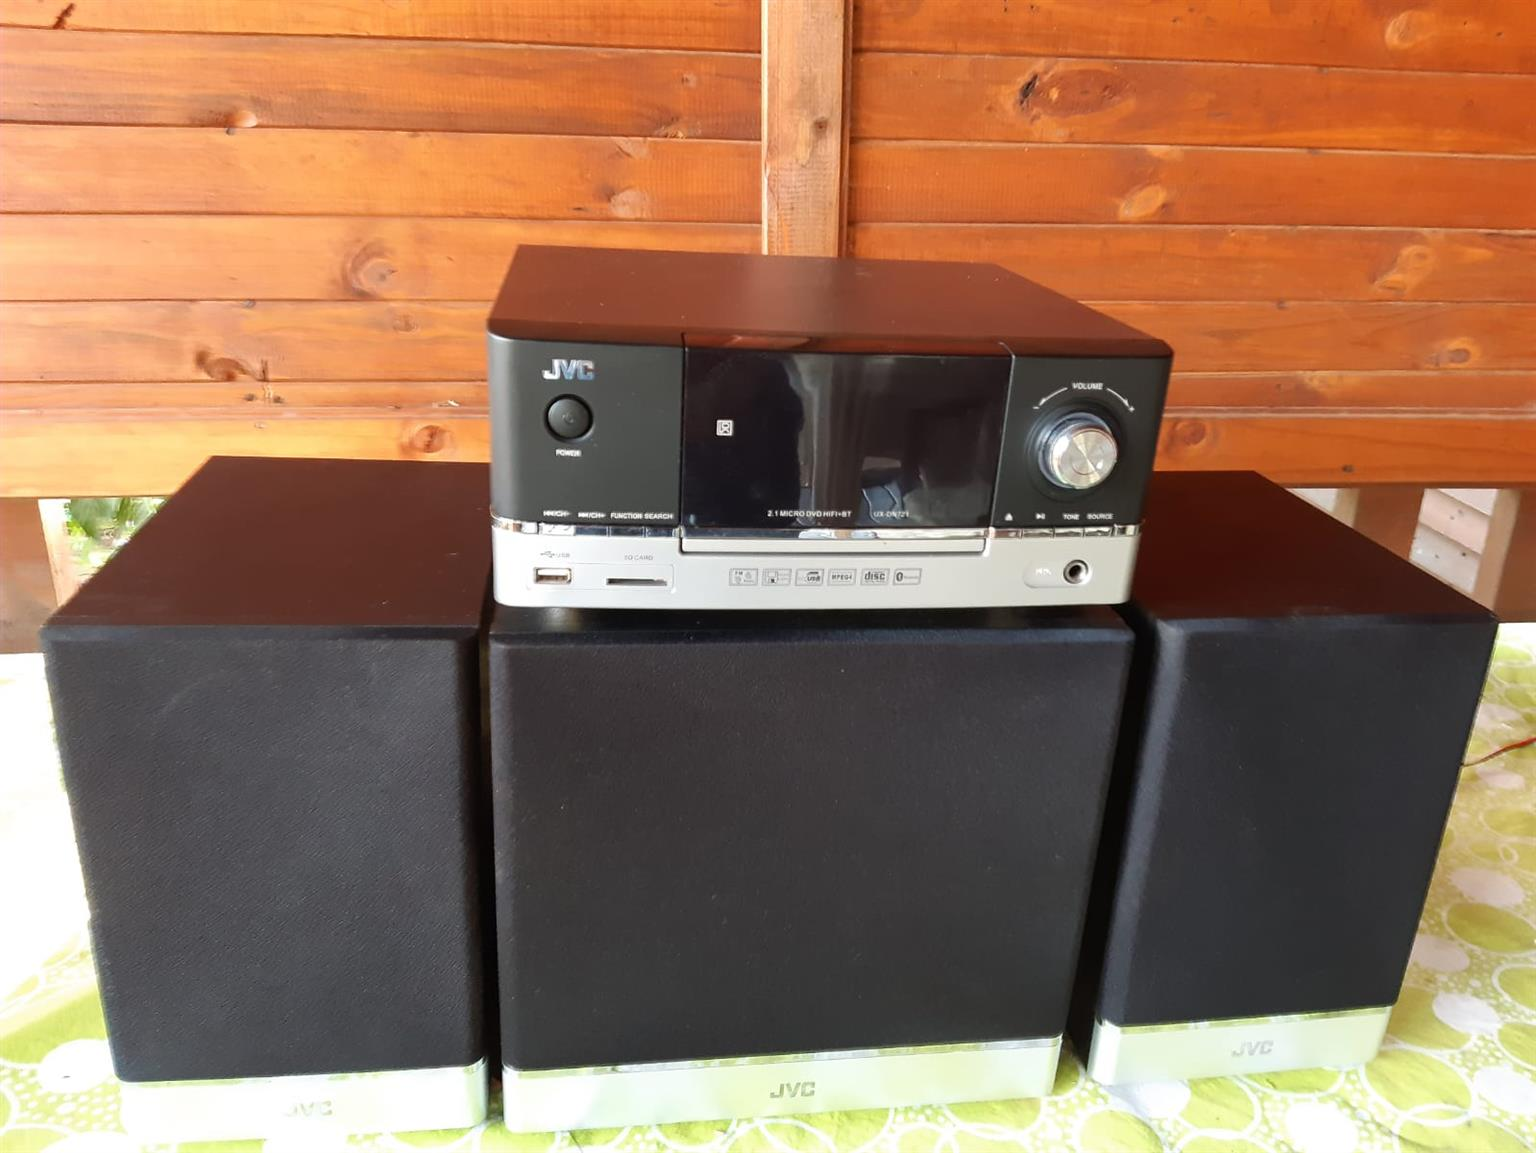 Selling a JVC surround system